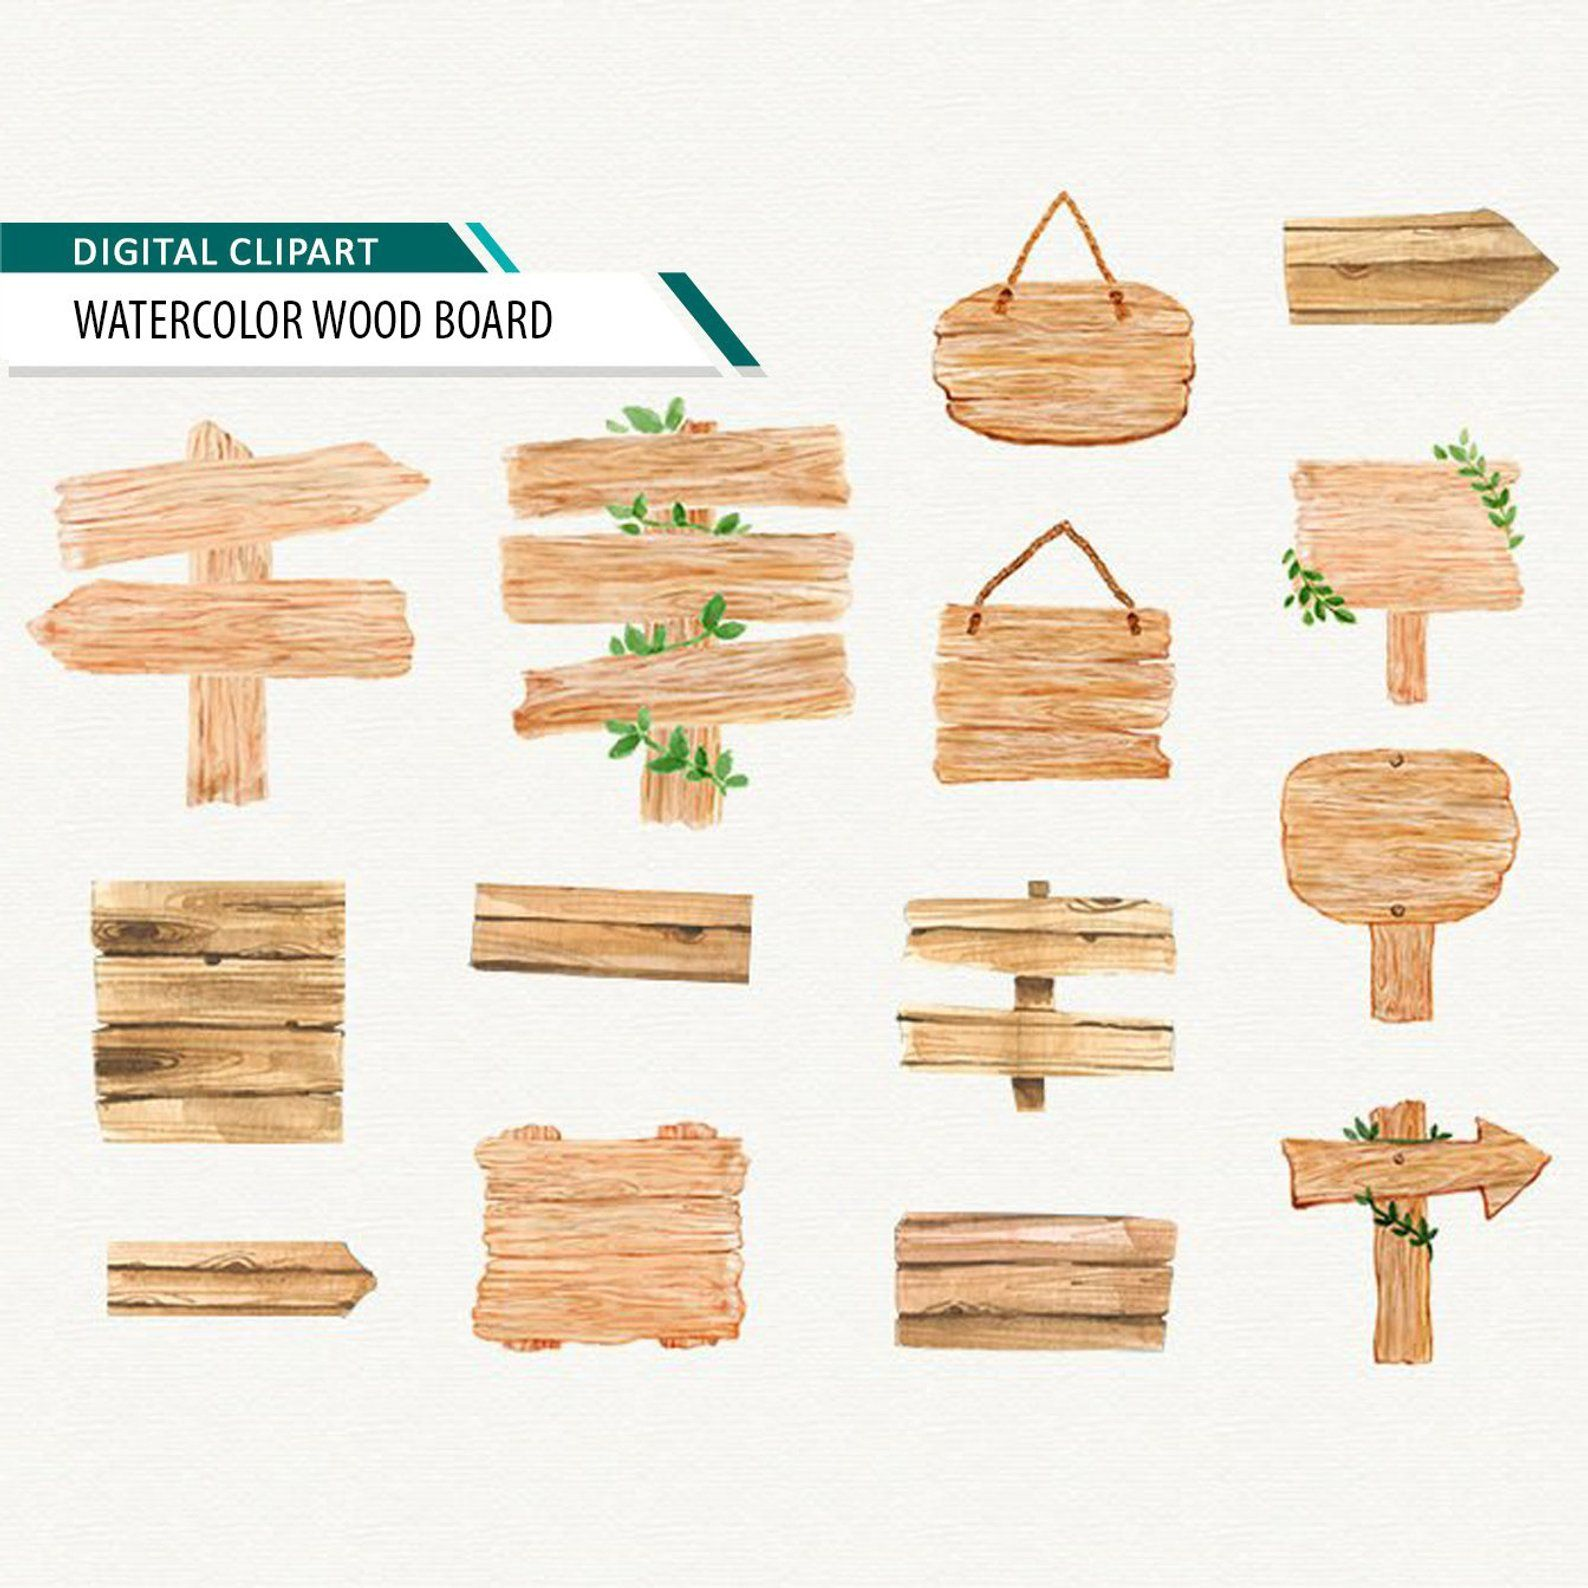 Wooden Signs Wood Board Watercolor Clipart Wood Planks Etsy Wooden Signs Wood Signs Painted Wood Signs